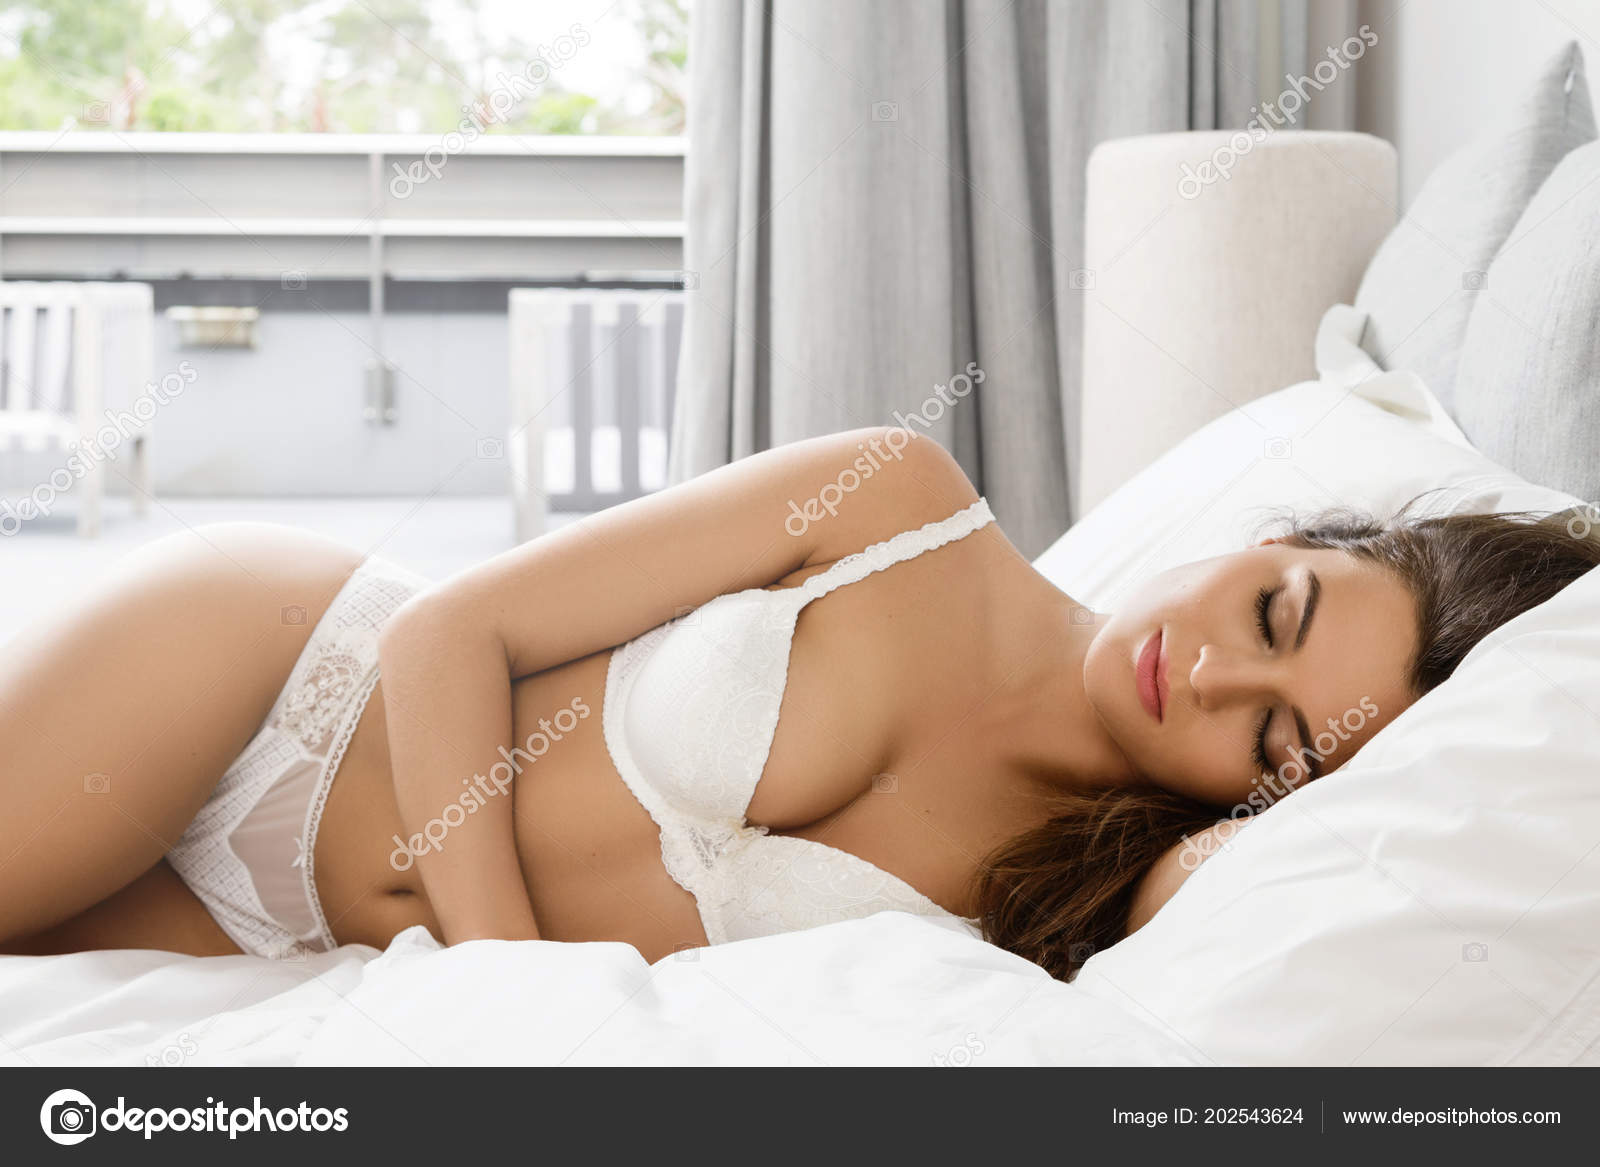 Beautiful sexy woman in white lingerie posing in bed– stock image 3bc3439c7